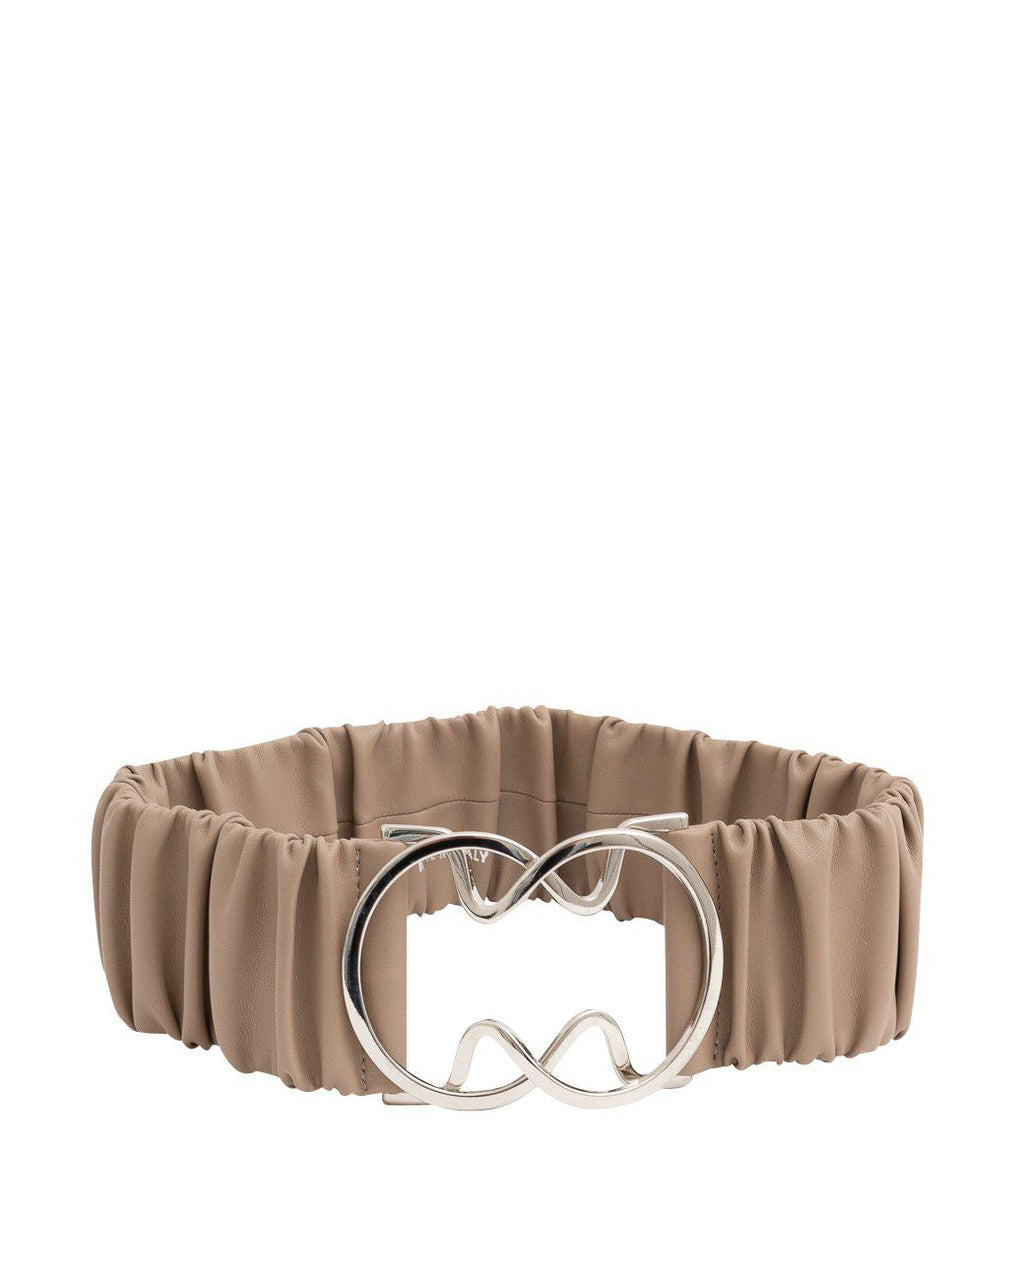 BEIGE STRETCH BELT WITH BUCKLE